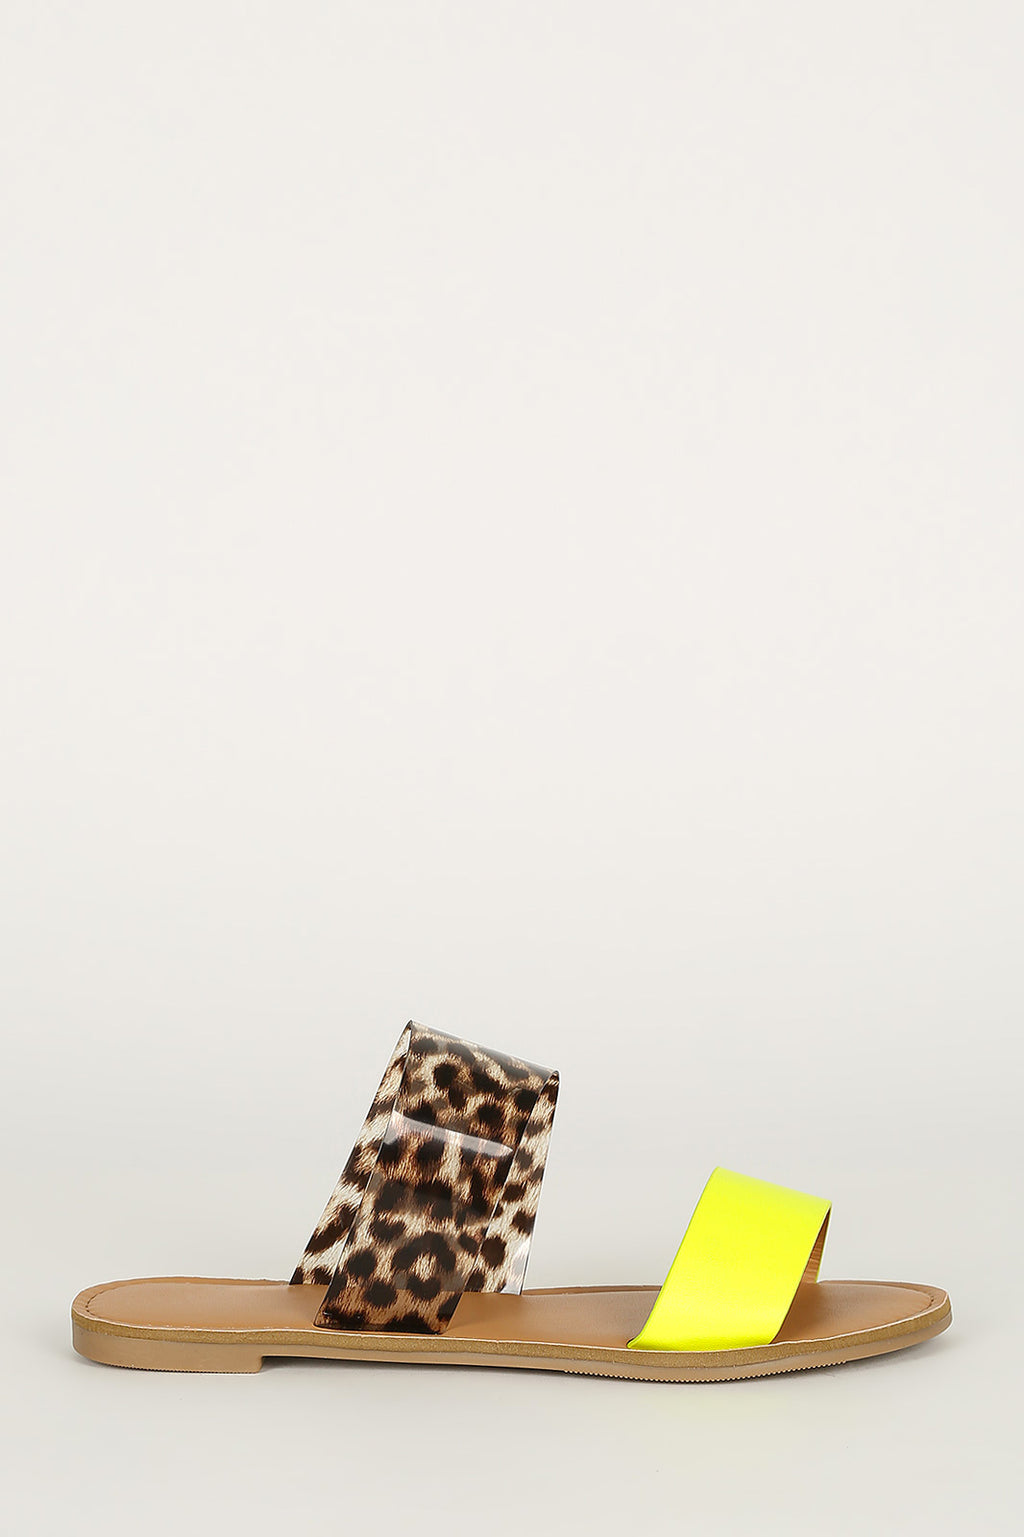 Endless Summer - Neon Yellow Leopard Sandals